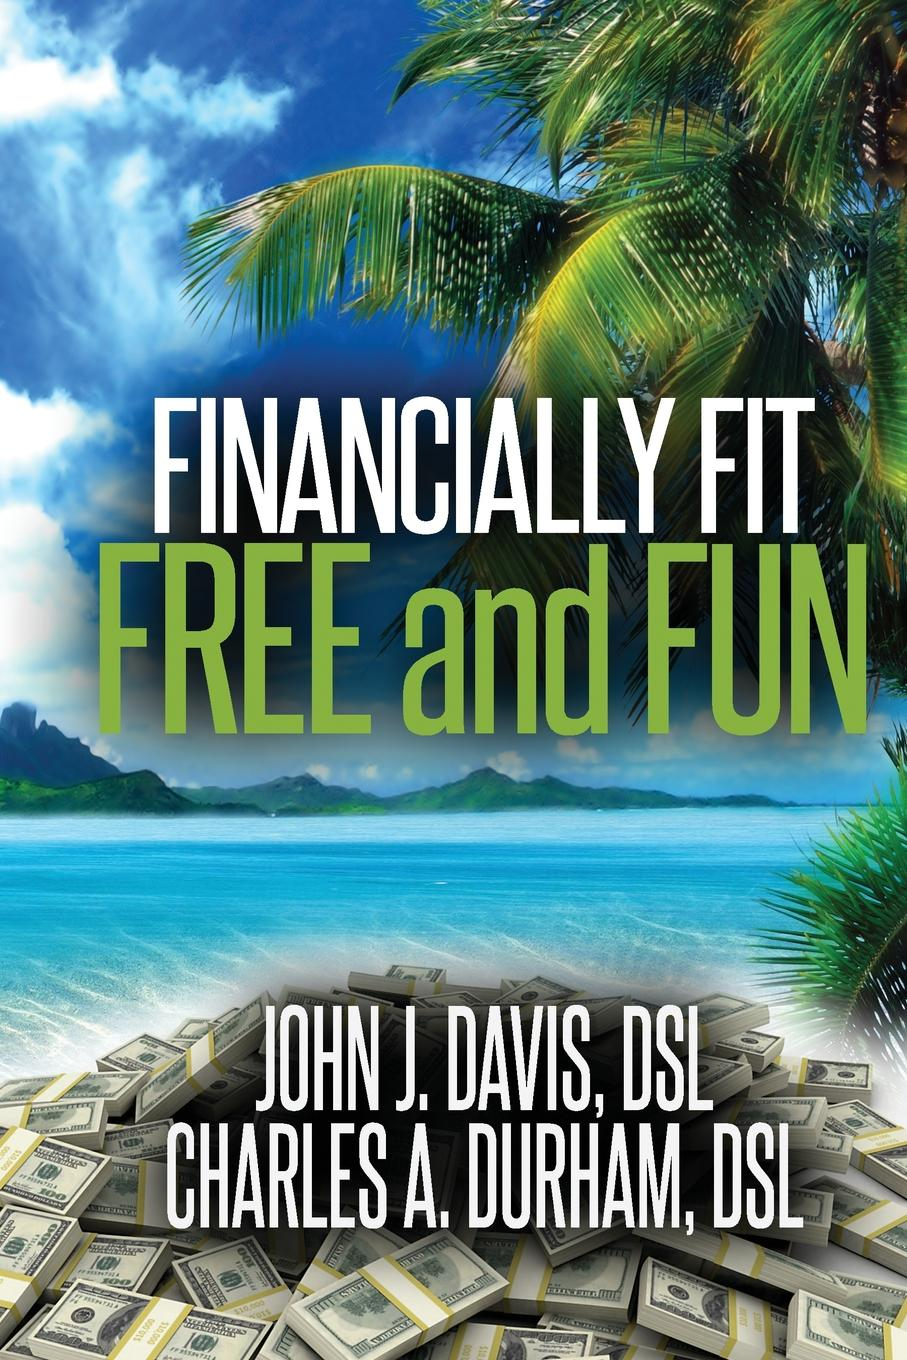 JOHN DAVIS, CHARLES DURHAM Financially Fit Free and Fun trish power super freedom create a worry free financial future in 6 steps